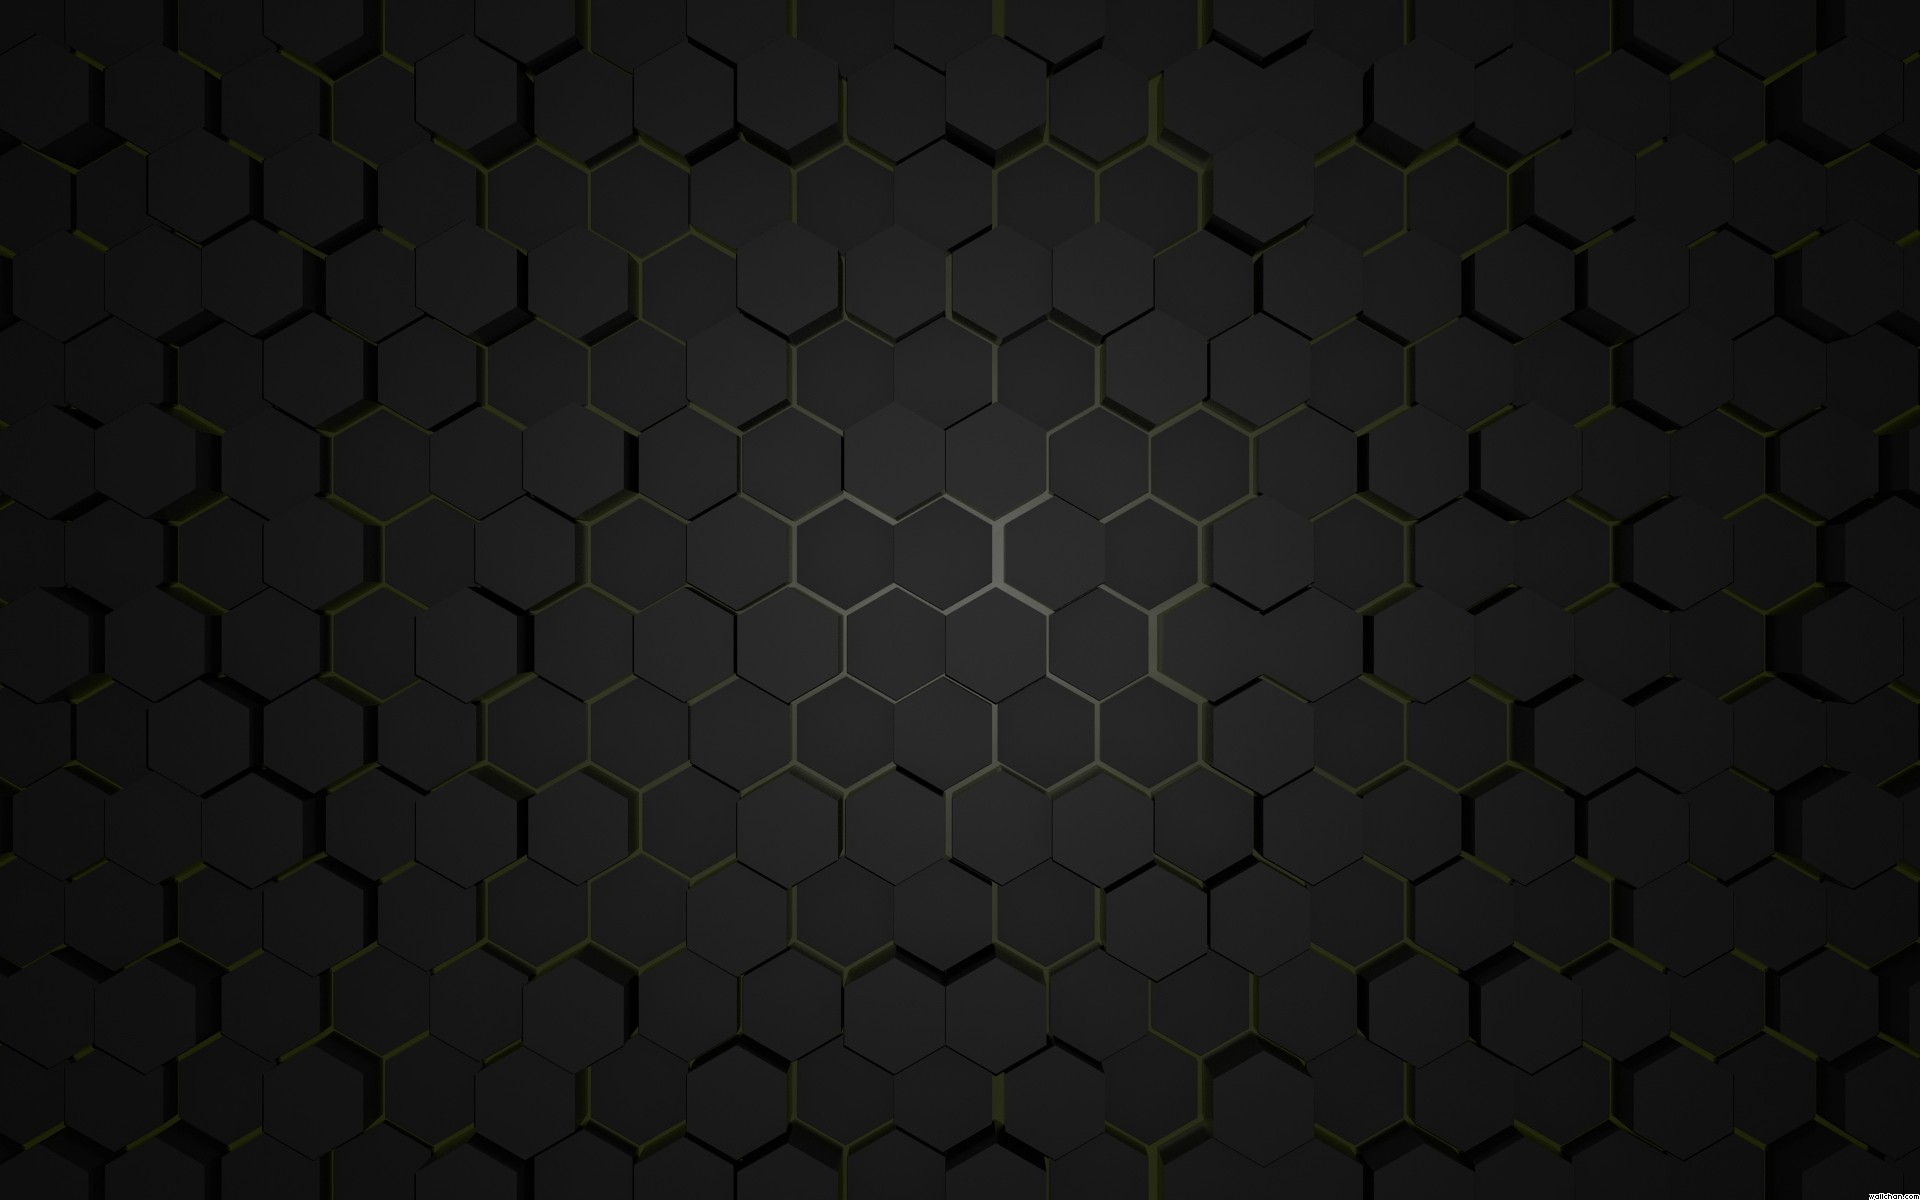 1920x1200 Abstract Black Waves Wallpaper 1366×768 Wallpapers Abstract Black (38  Wallpapers) | Adorable